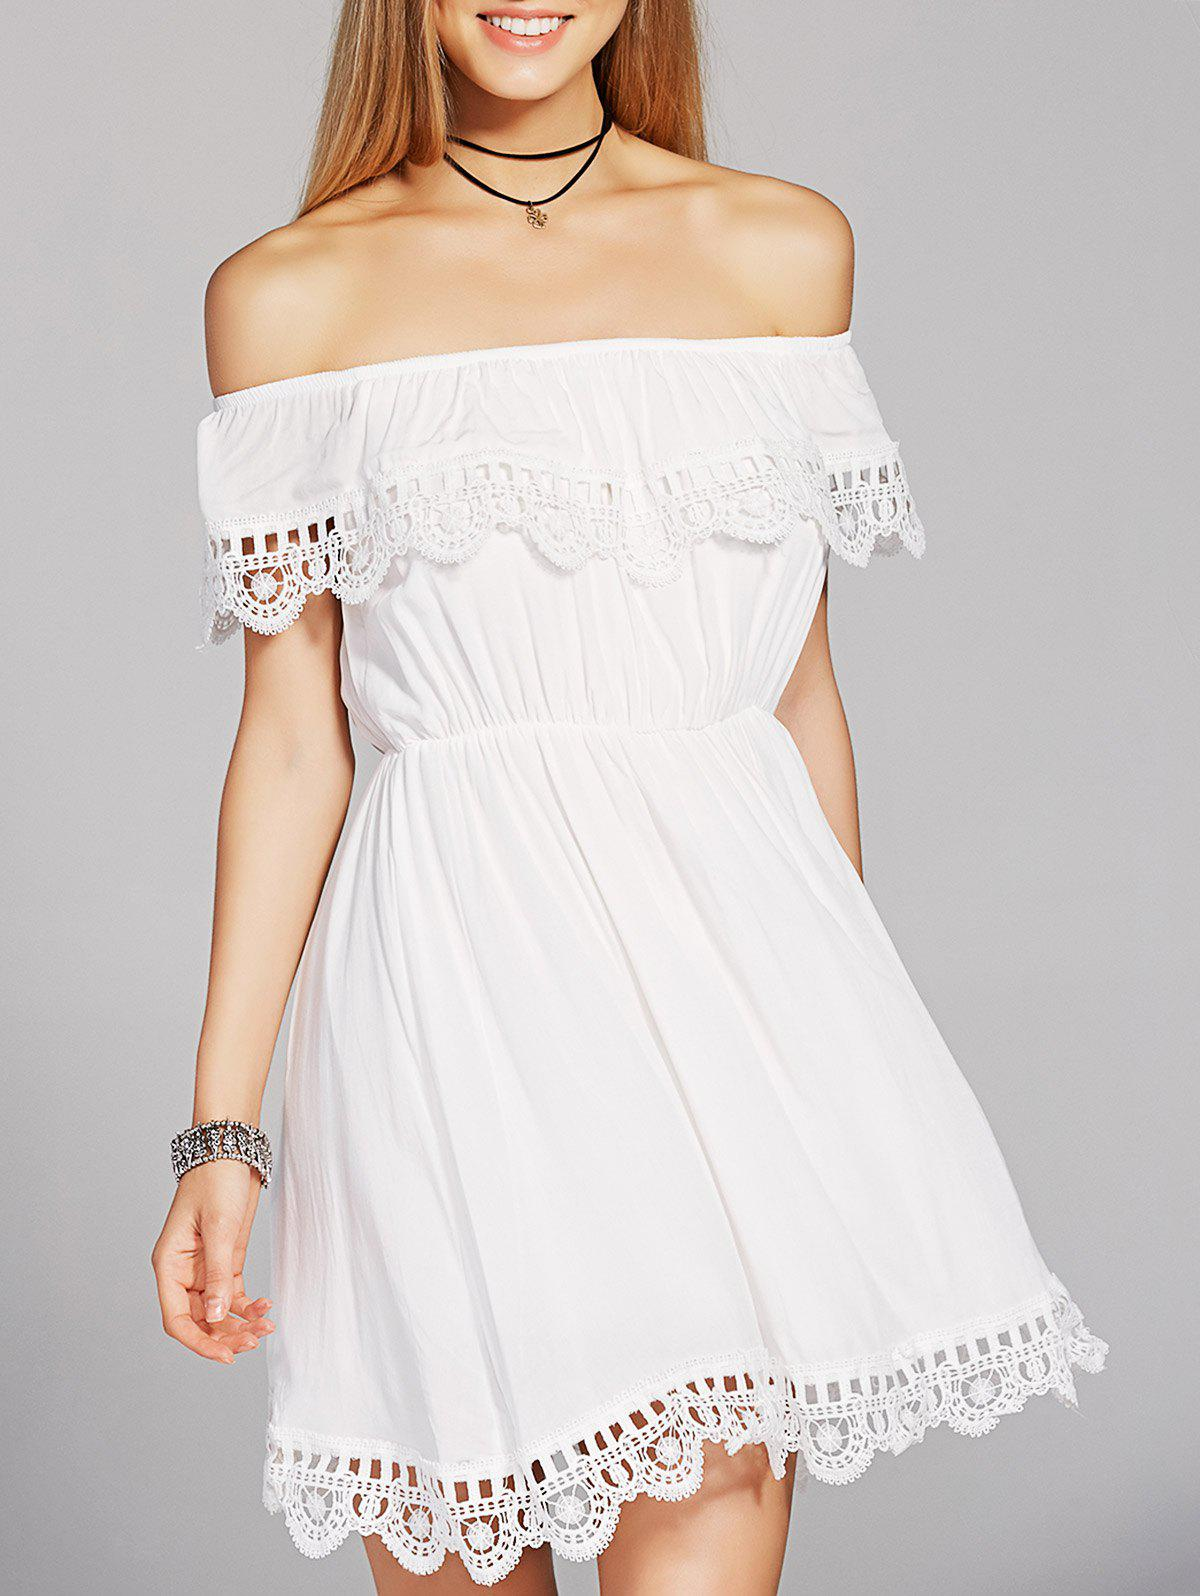 Stylish Women's Off The Shoulder High Waisted Crochet A-Line Dress - WHITE M